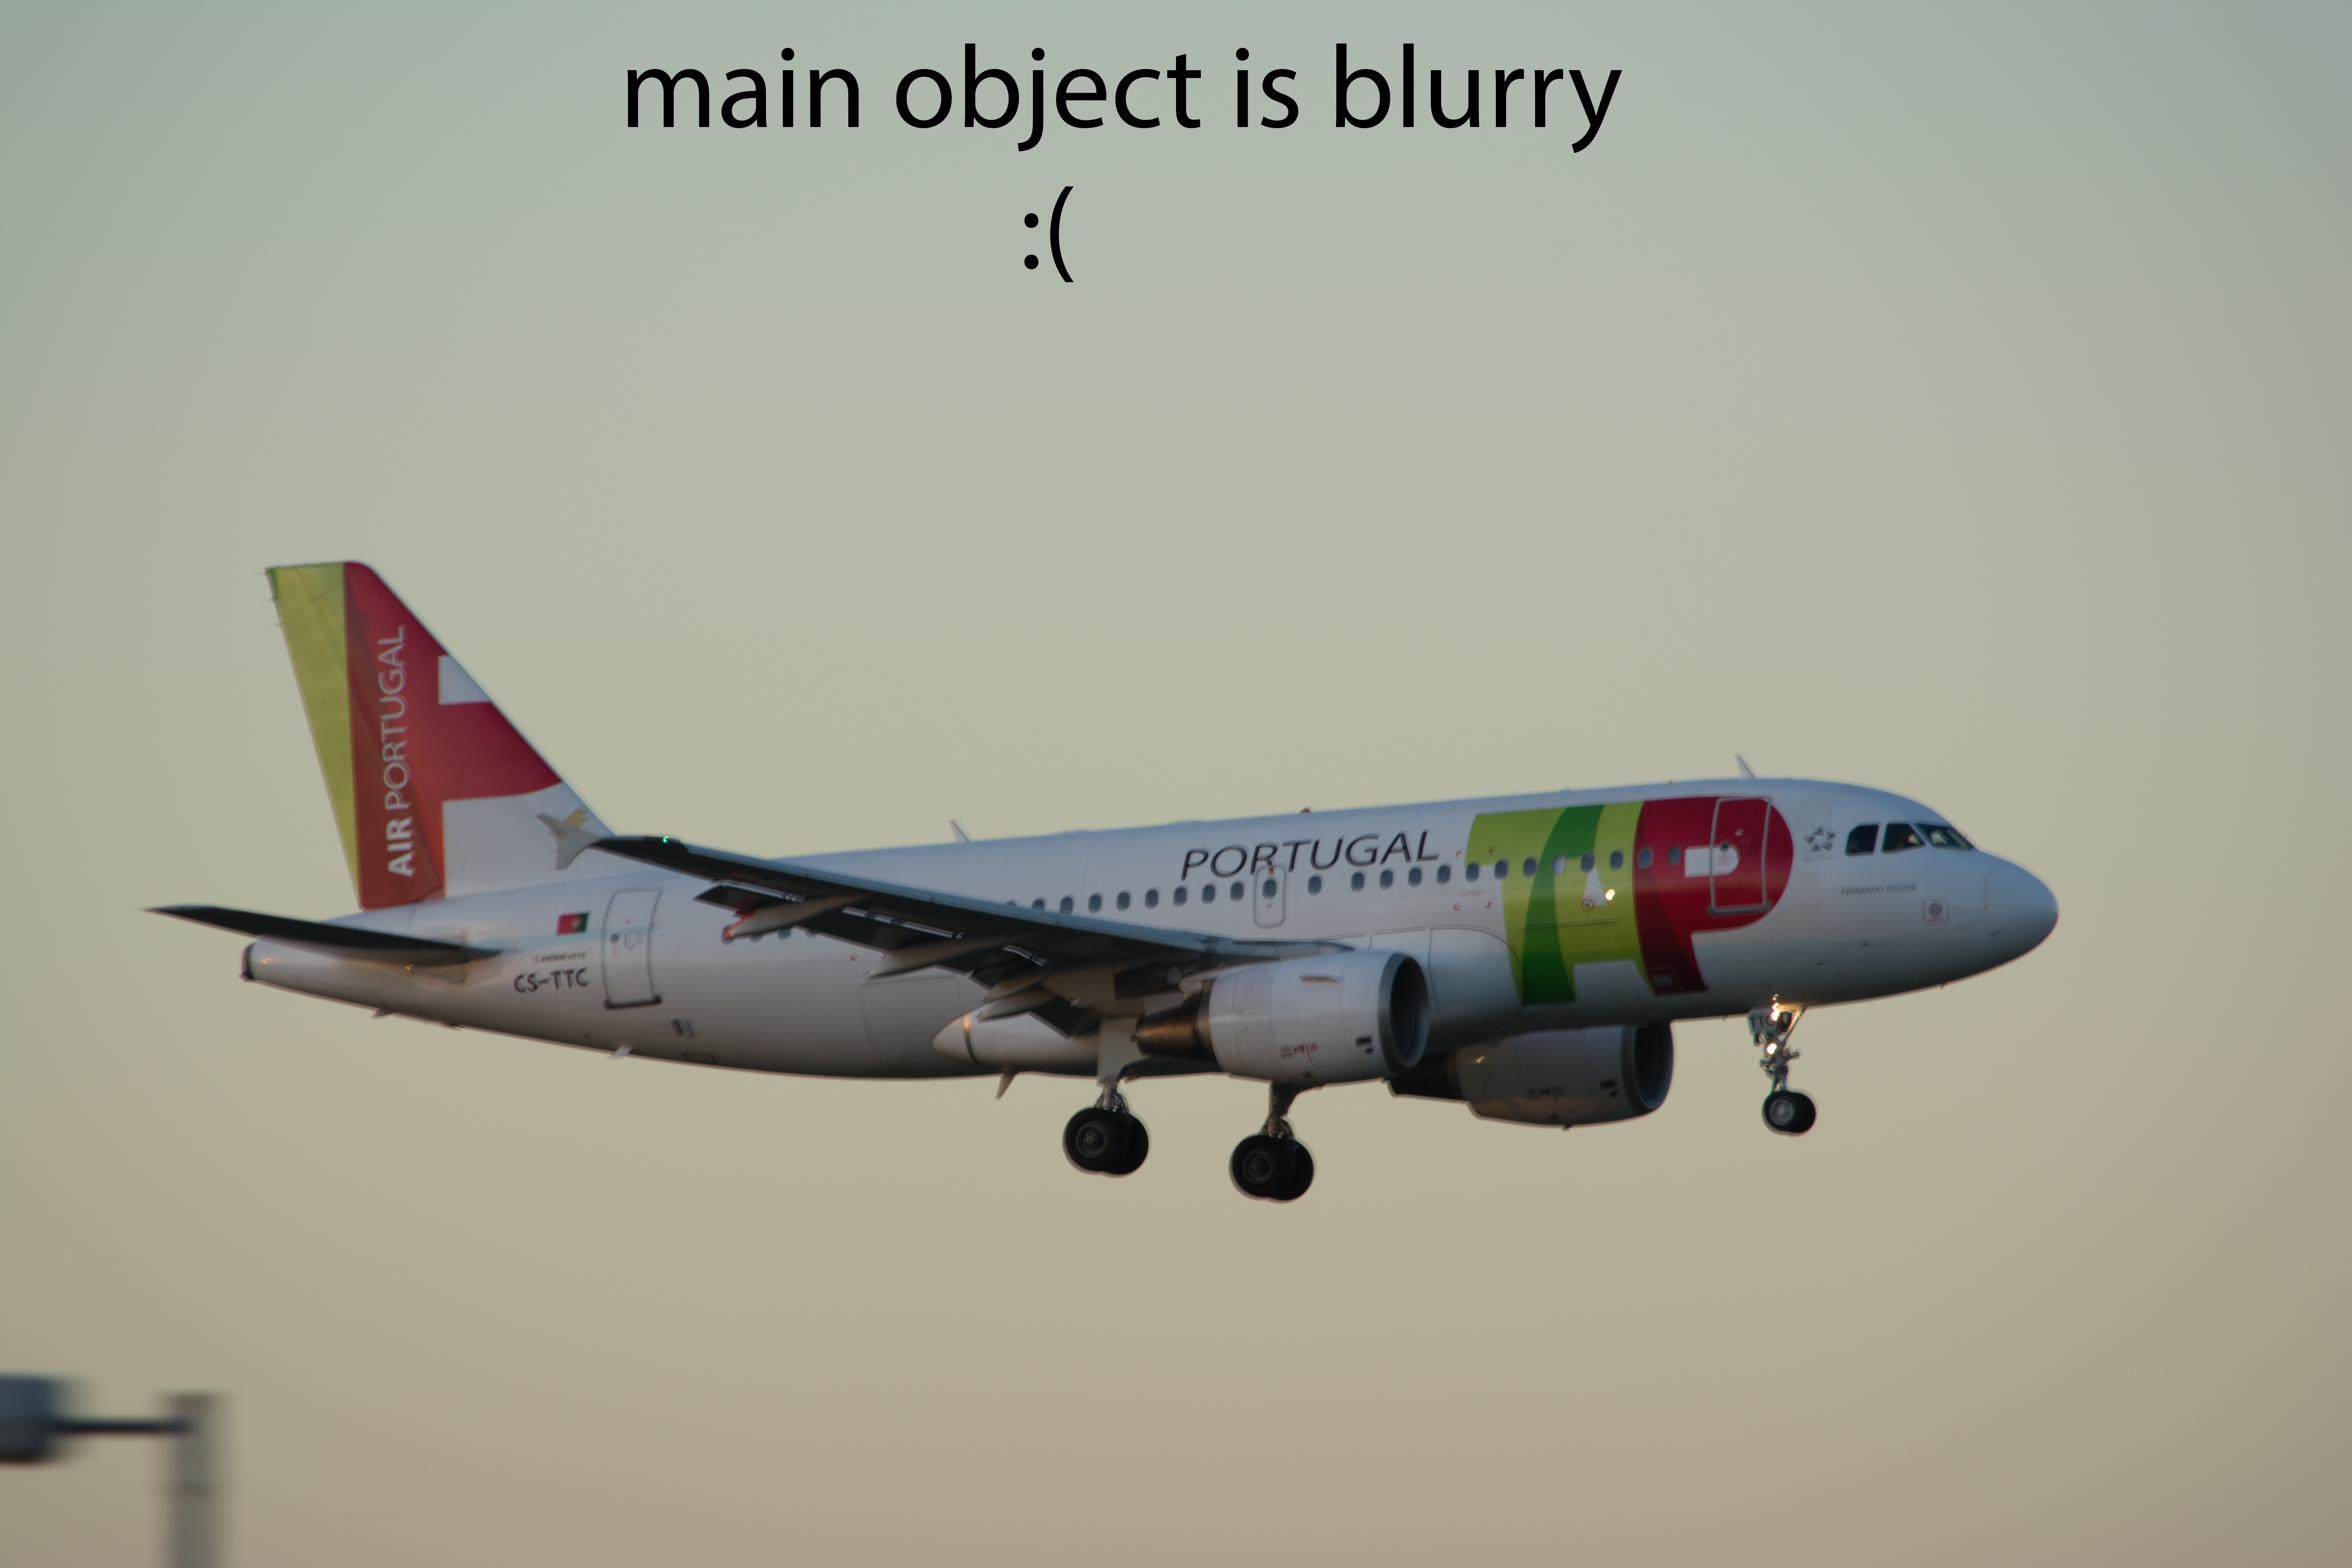 TAP - Air Portugal A319 - Main object is blurry :(